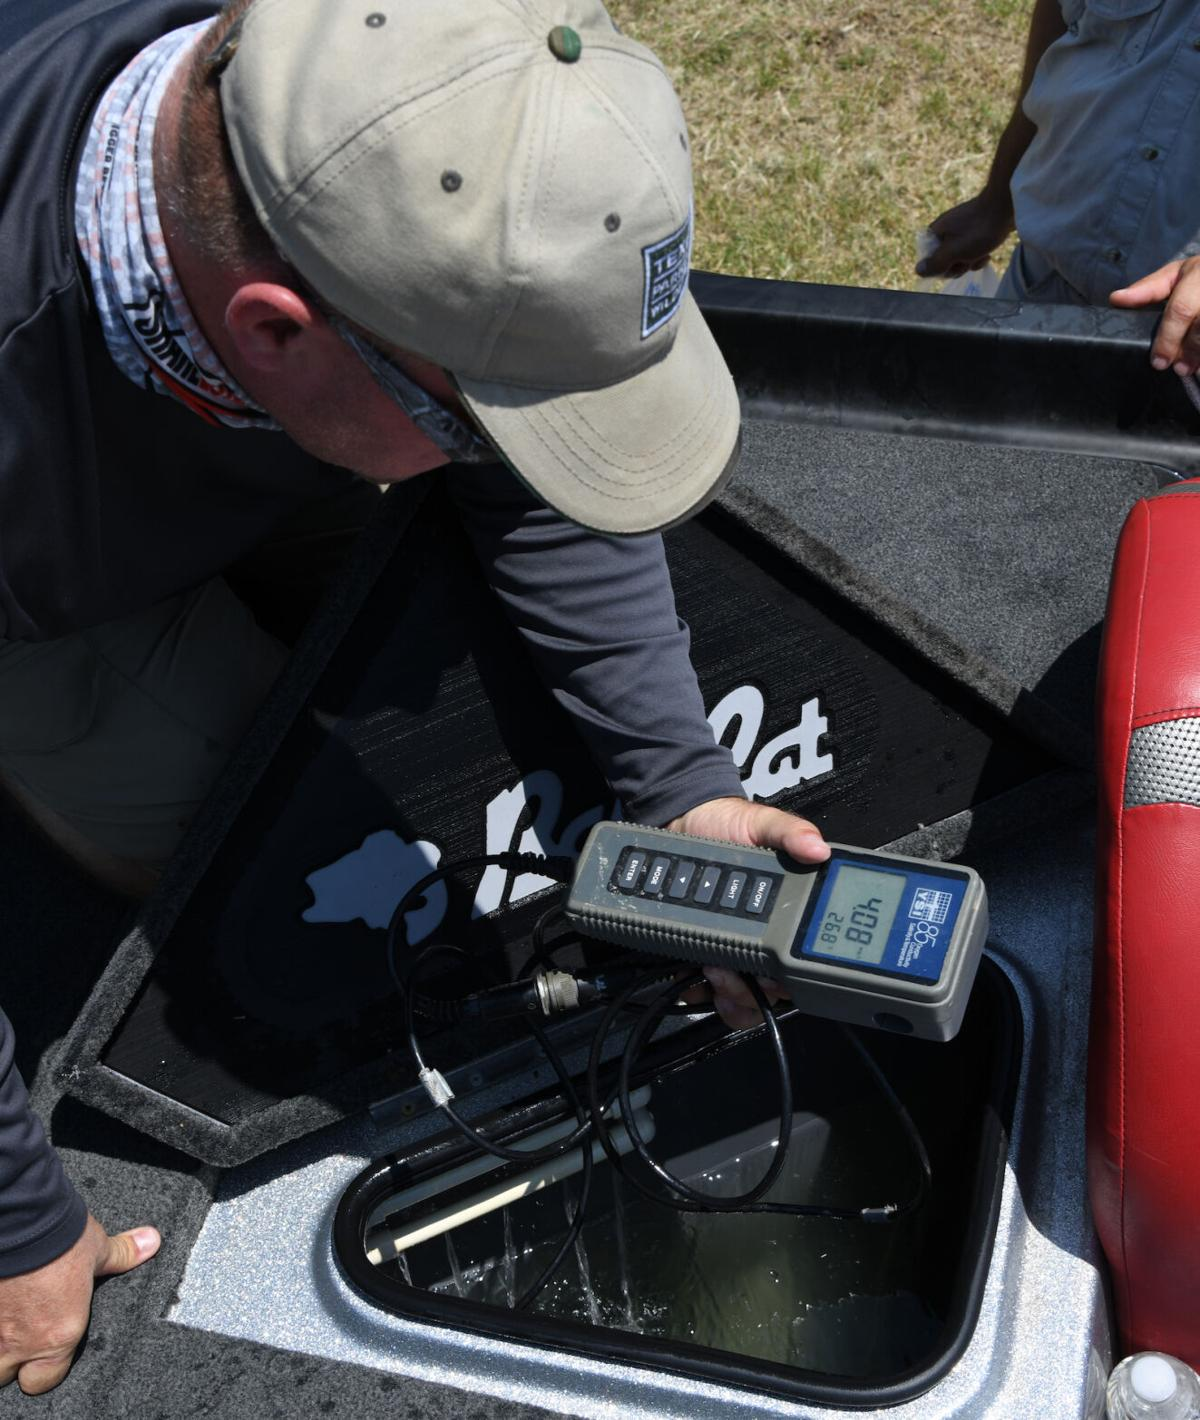 Checking Oxygen with meter